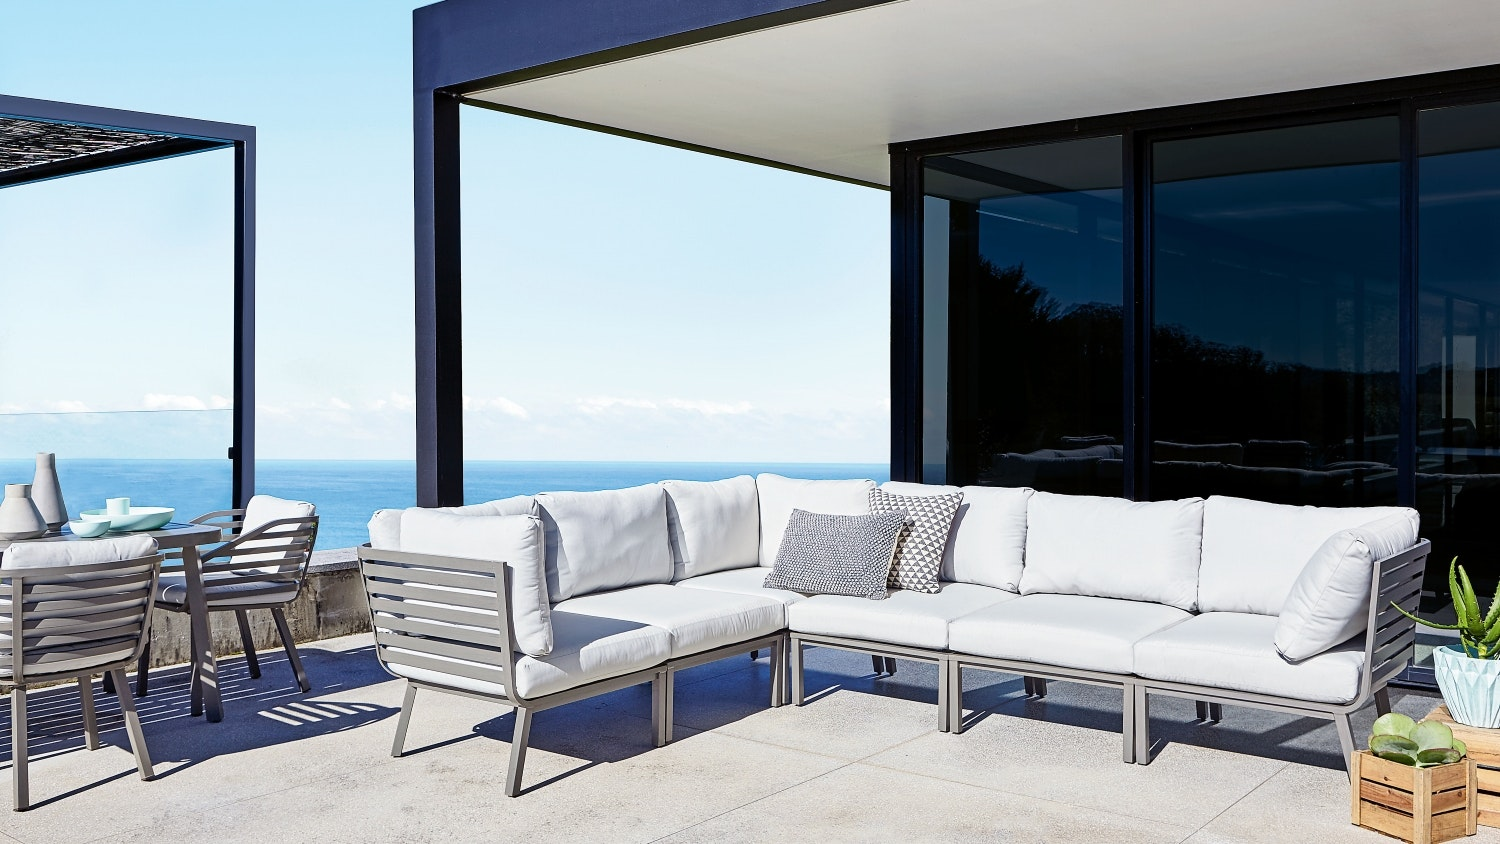 Domayne Outdoor Sofas Refil Sofa : 79078 from forexrefiller.com size 1500 x 844 jpeg 136kB